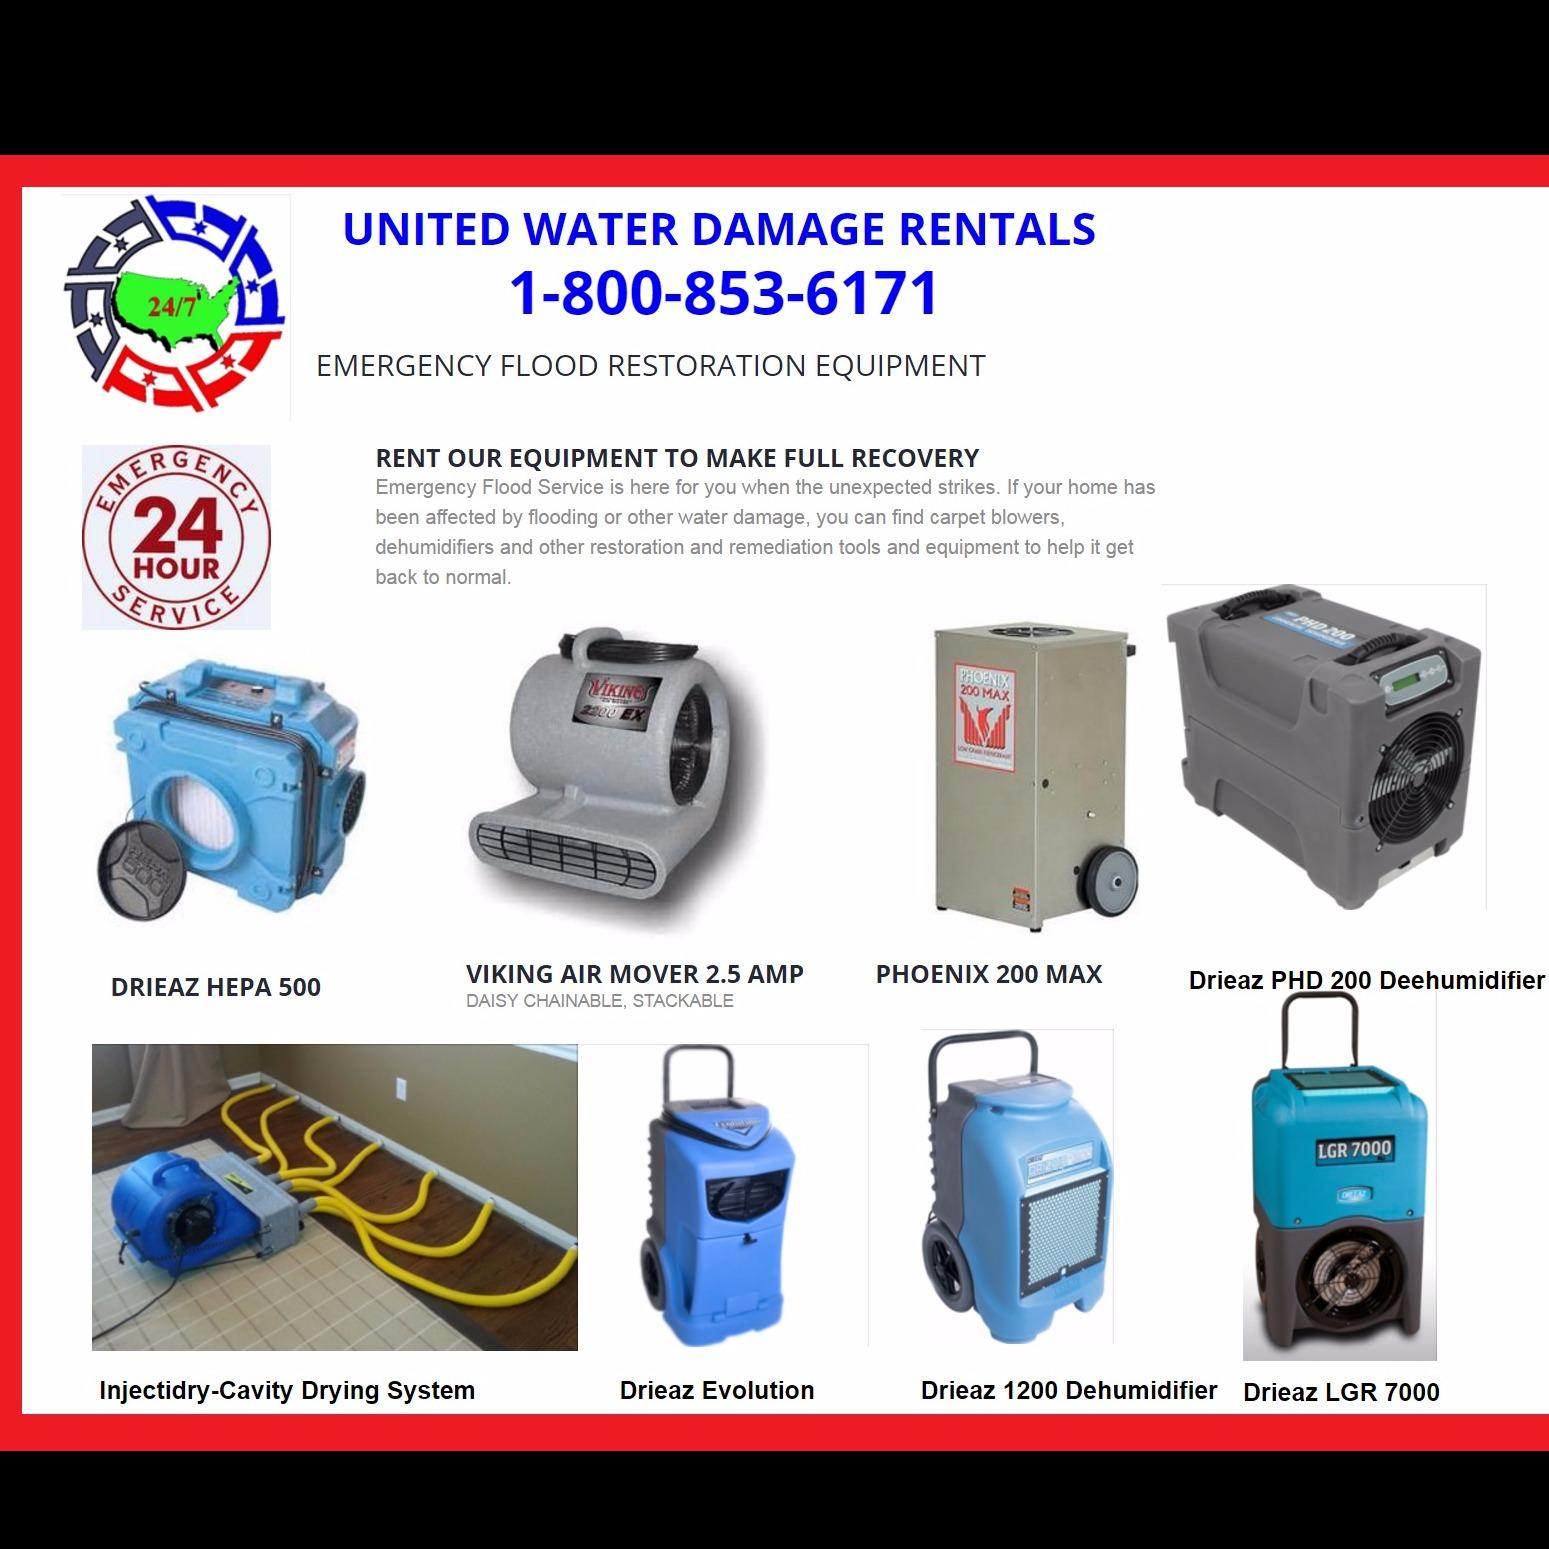 United Water Damage Rentals